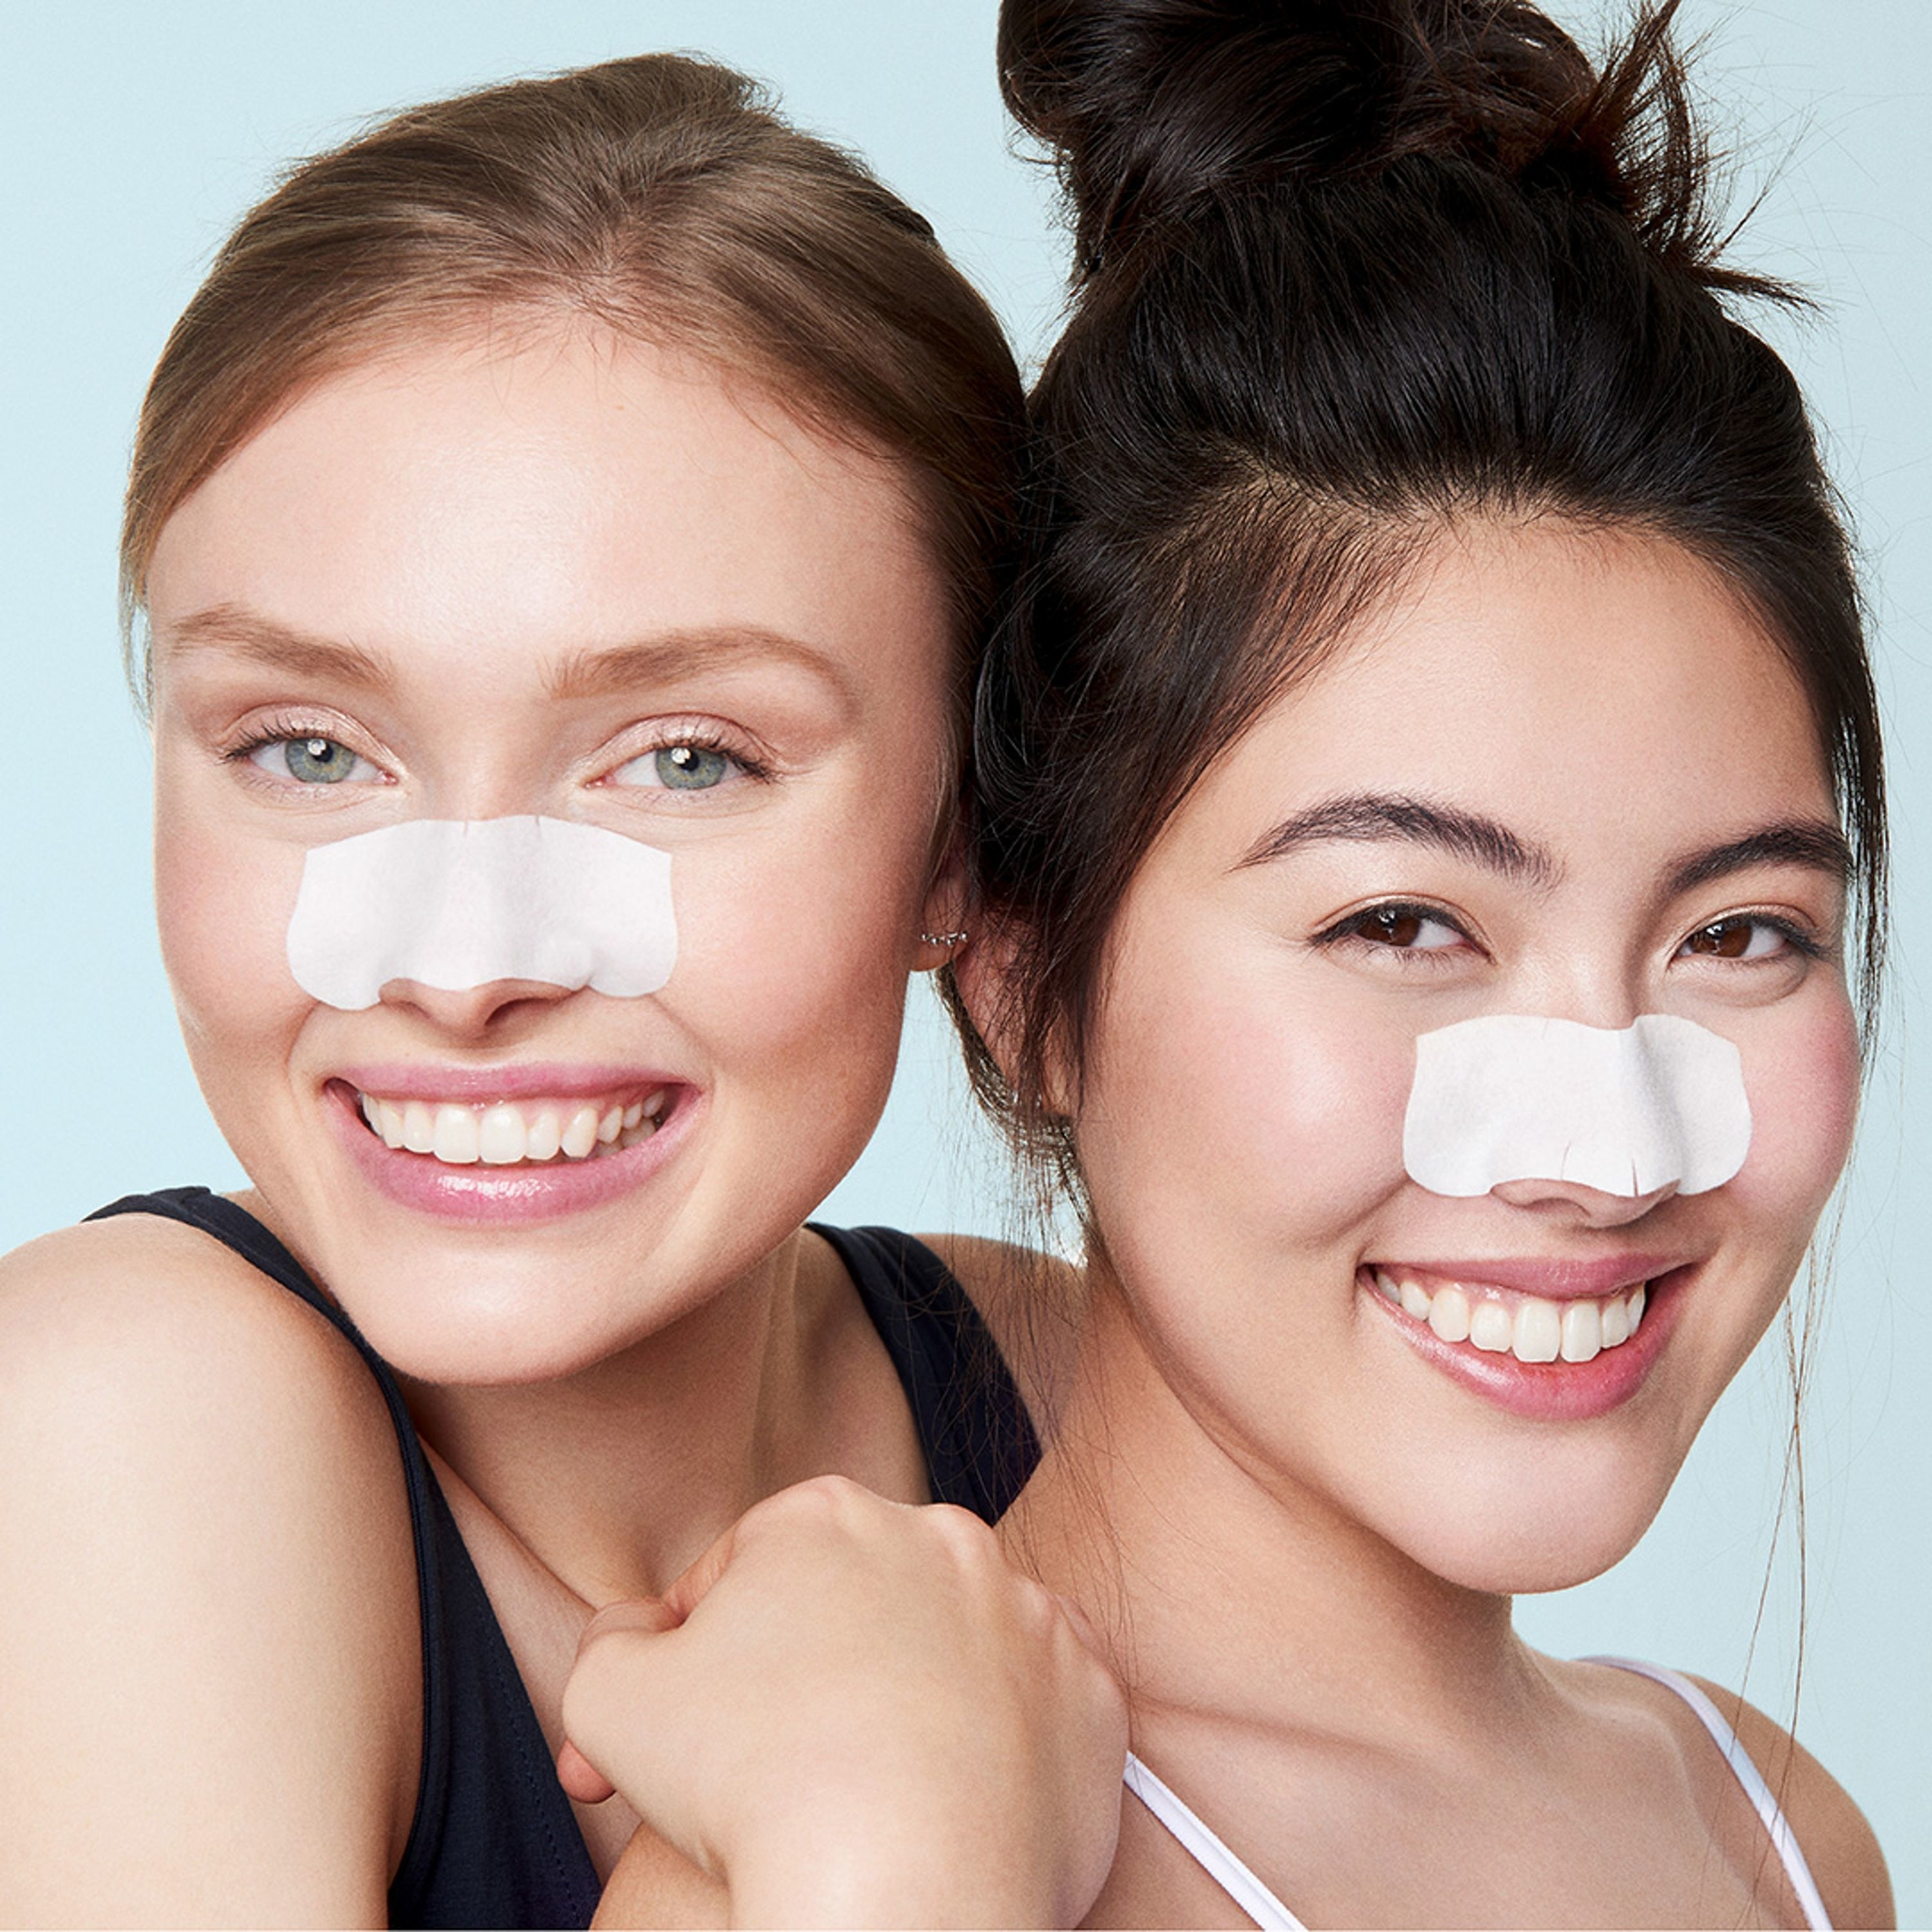 Models wearing Biore strips on their noses